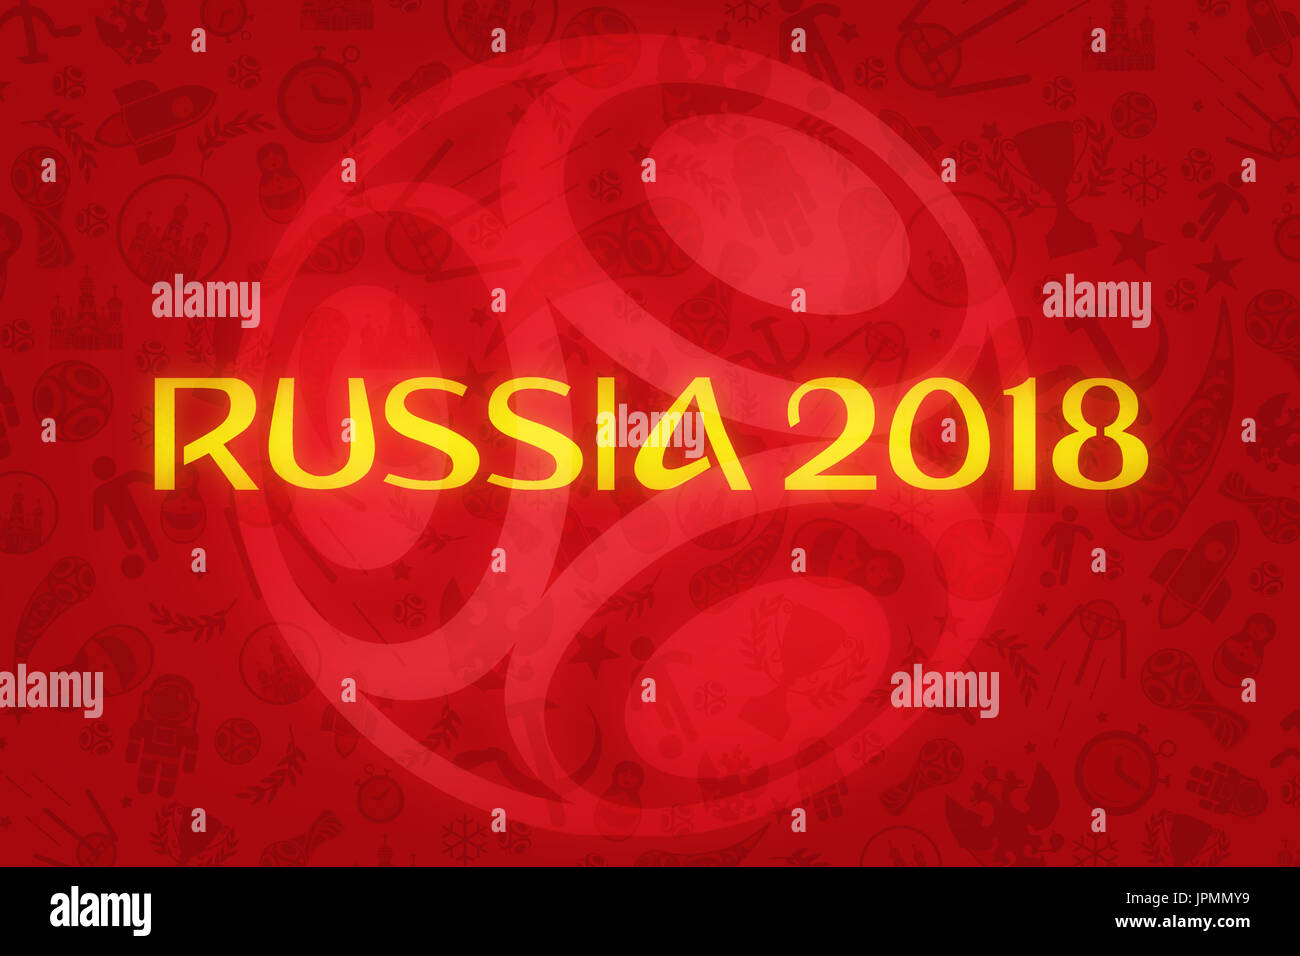 World Cup Football 2018 Wallpaper - World Soccer Tournament in Russia - Stock Image